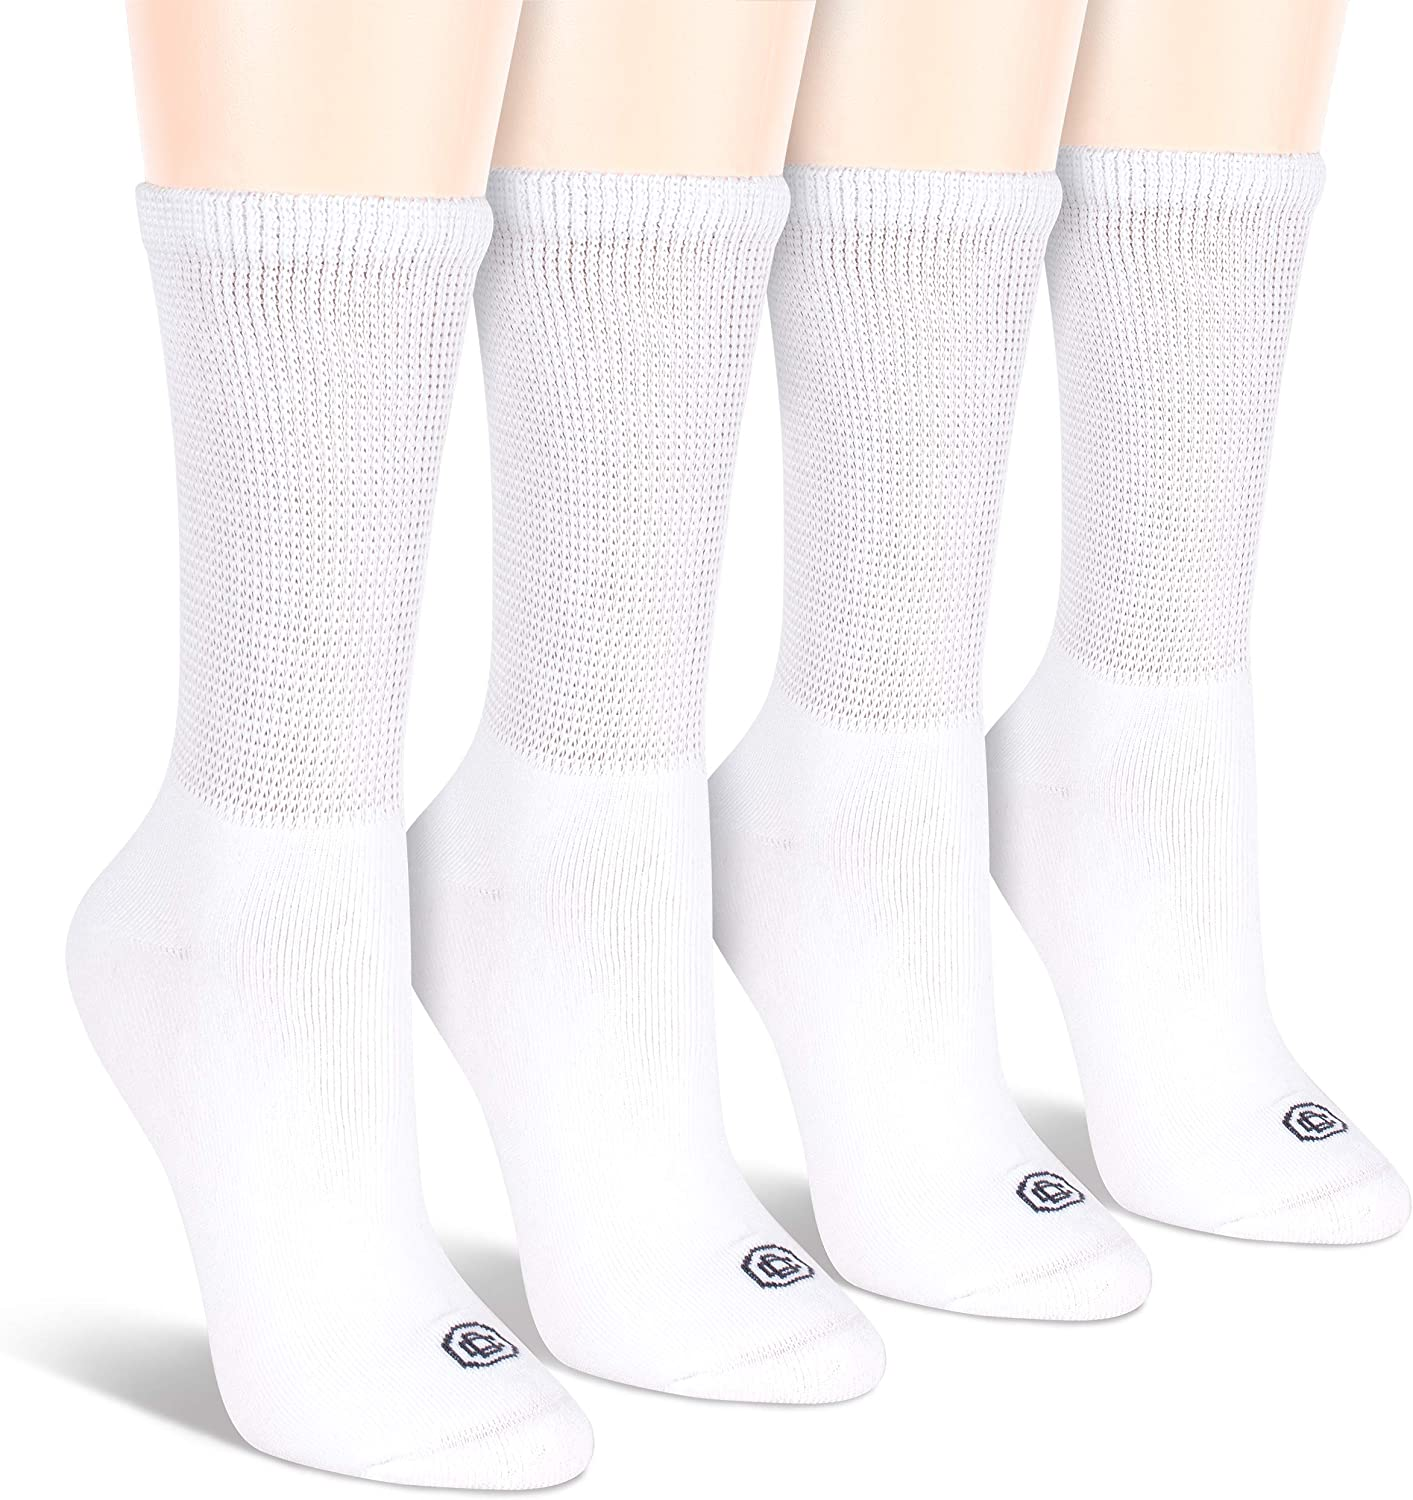 Doctor's Choice Women's Diabetic Crew Socks, Non-Binding, Circulatory, Cushioned, 4 Pack, White, Shoe Size 6-10, Sock Size 9-11: Health & Personal Care